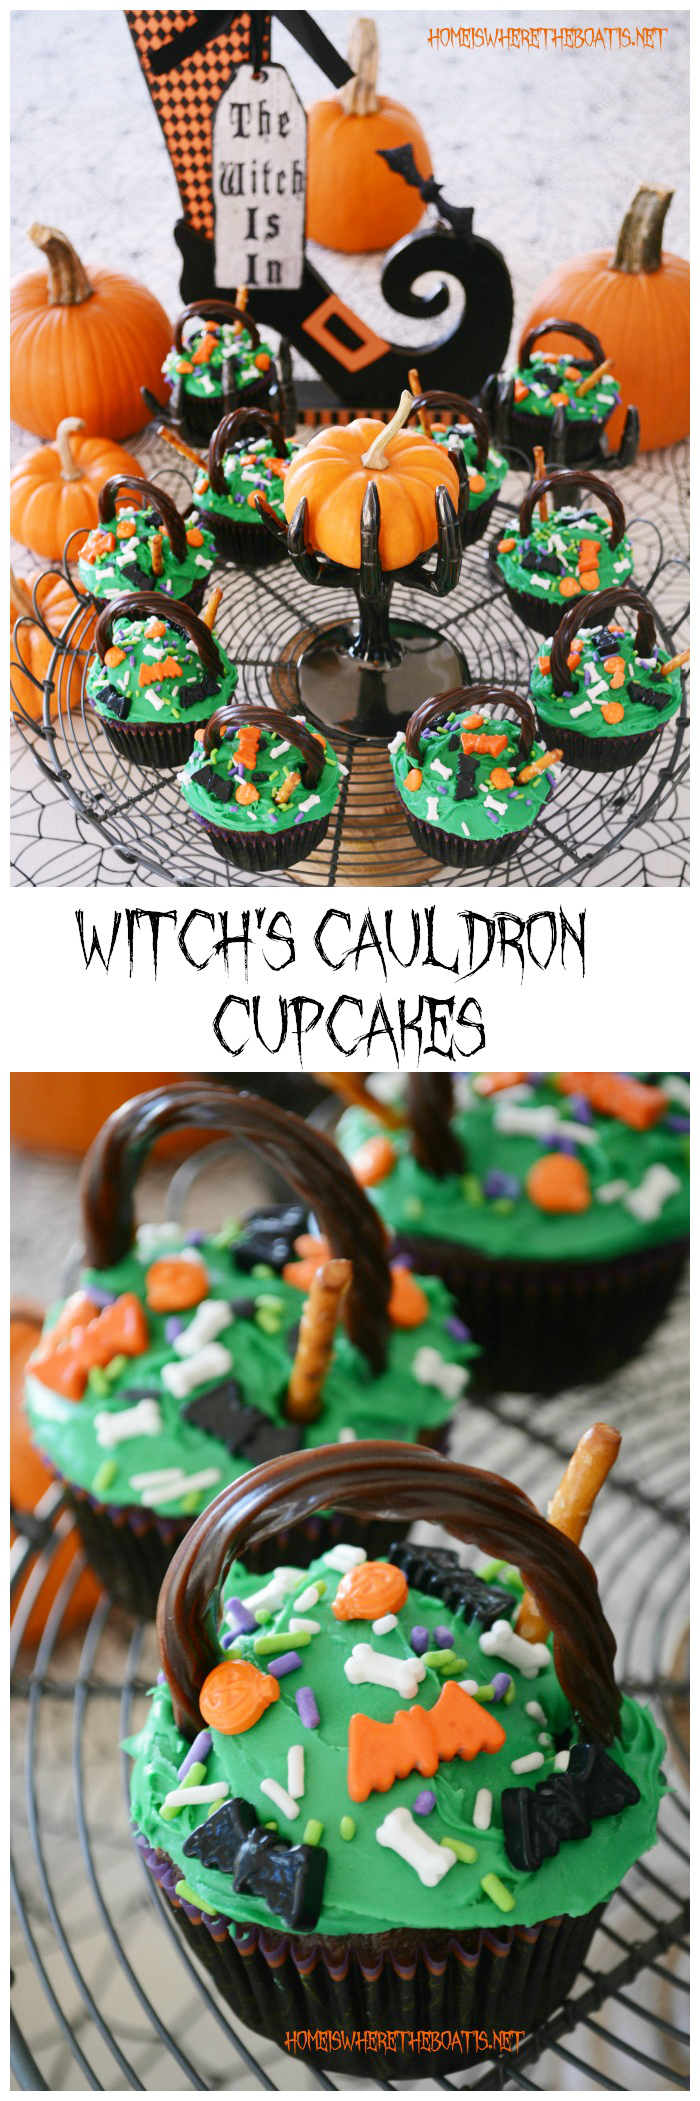 Witches Cauldron Cupcakes | ©homeiswheretheboatis.net #Halloween #cupcakes